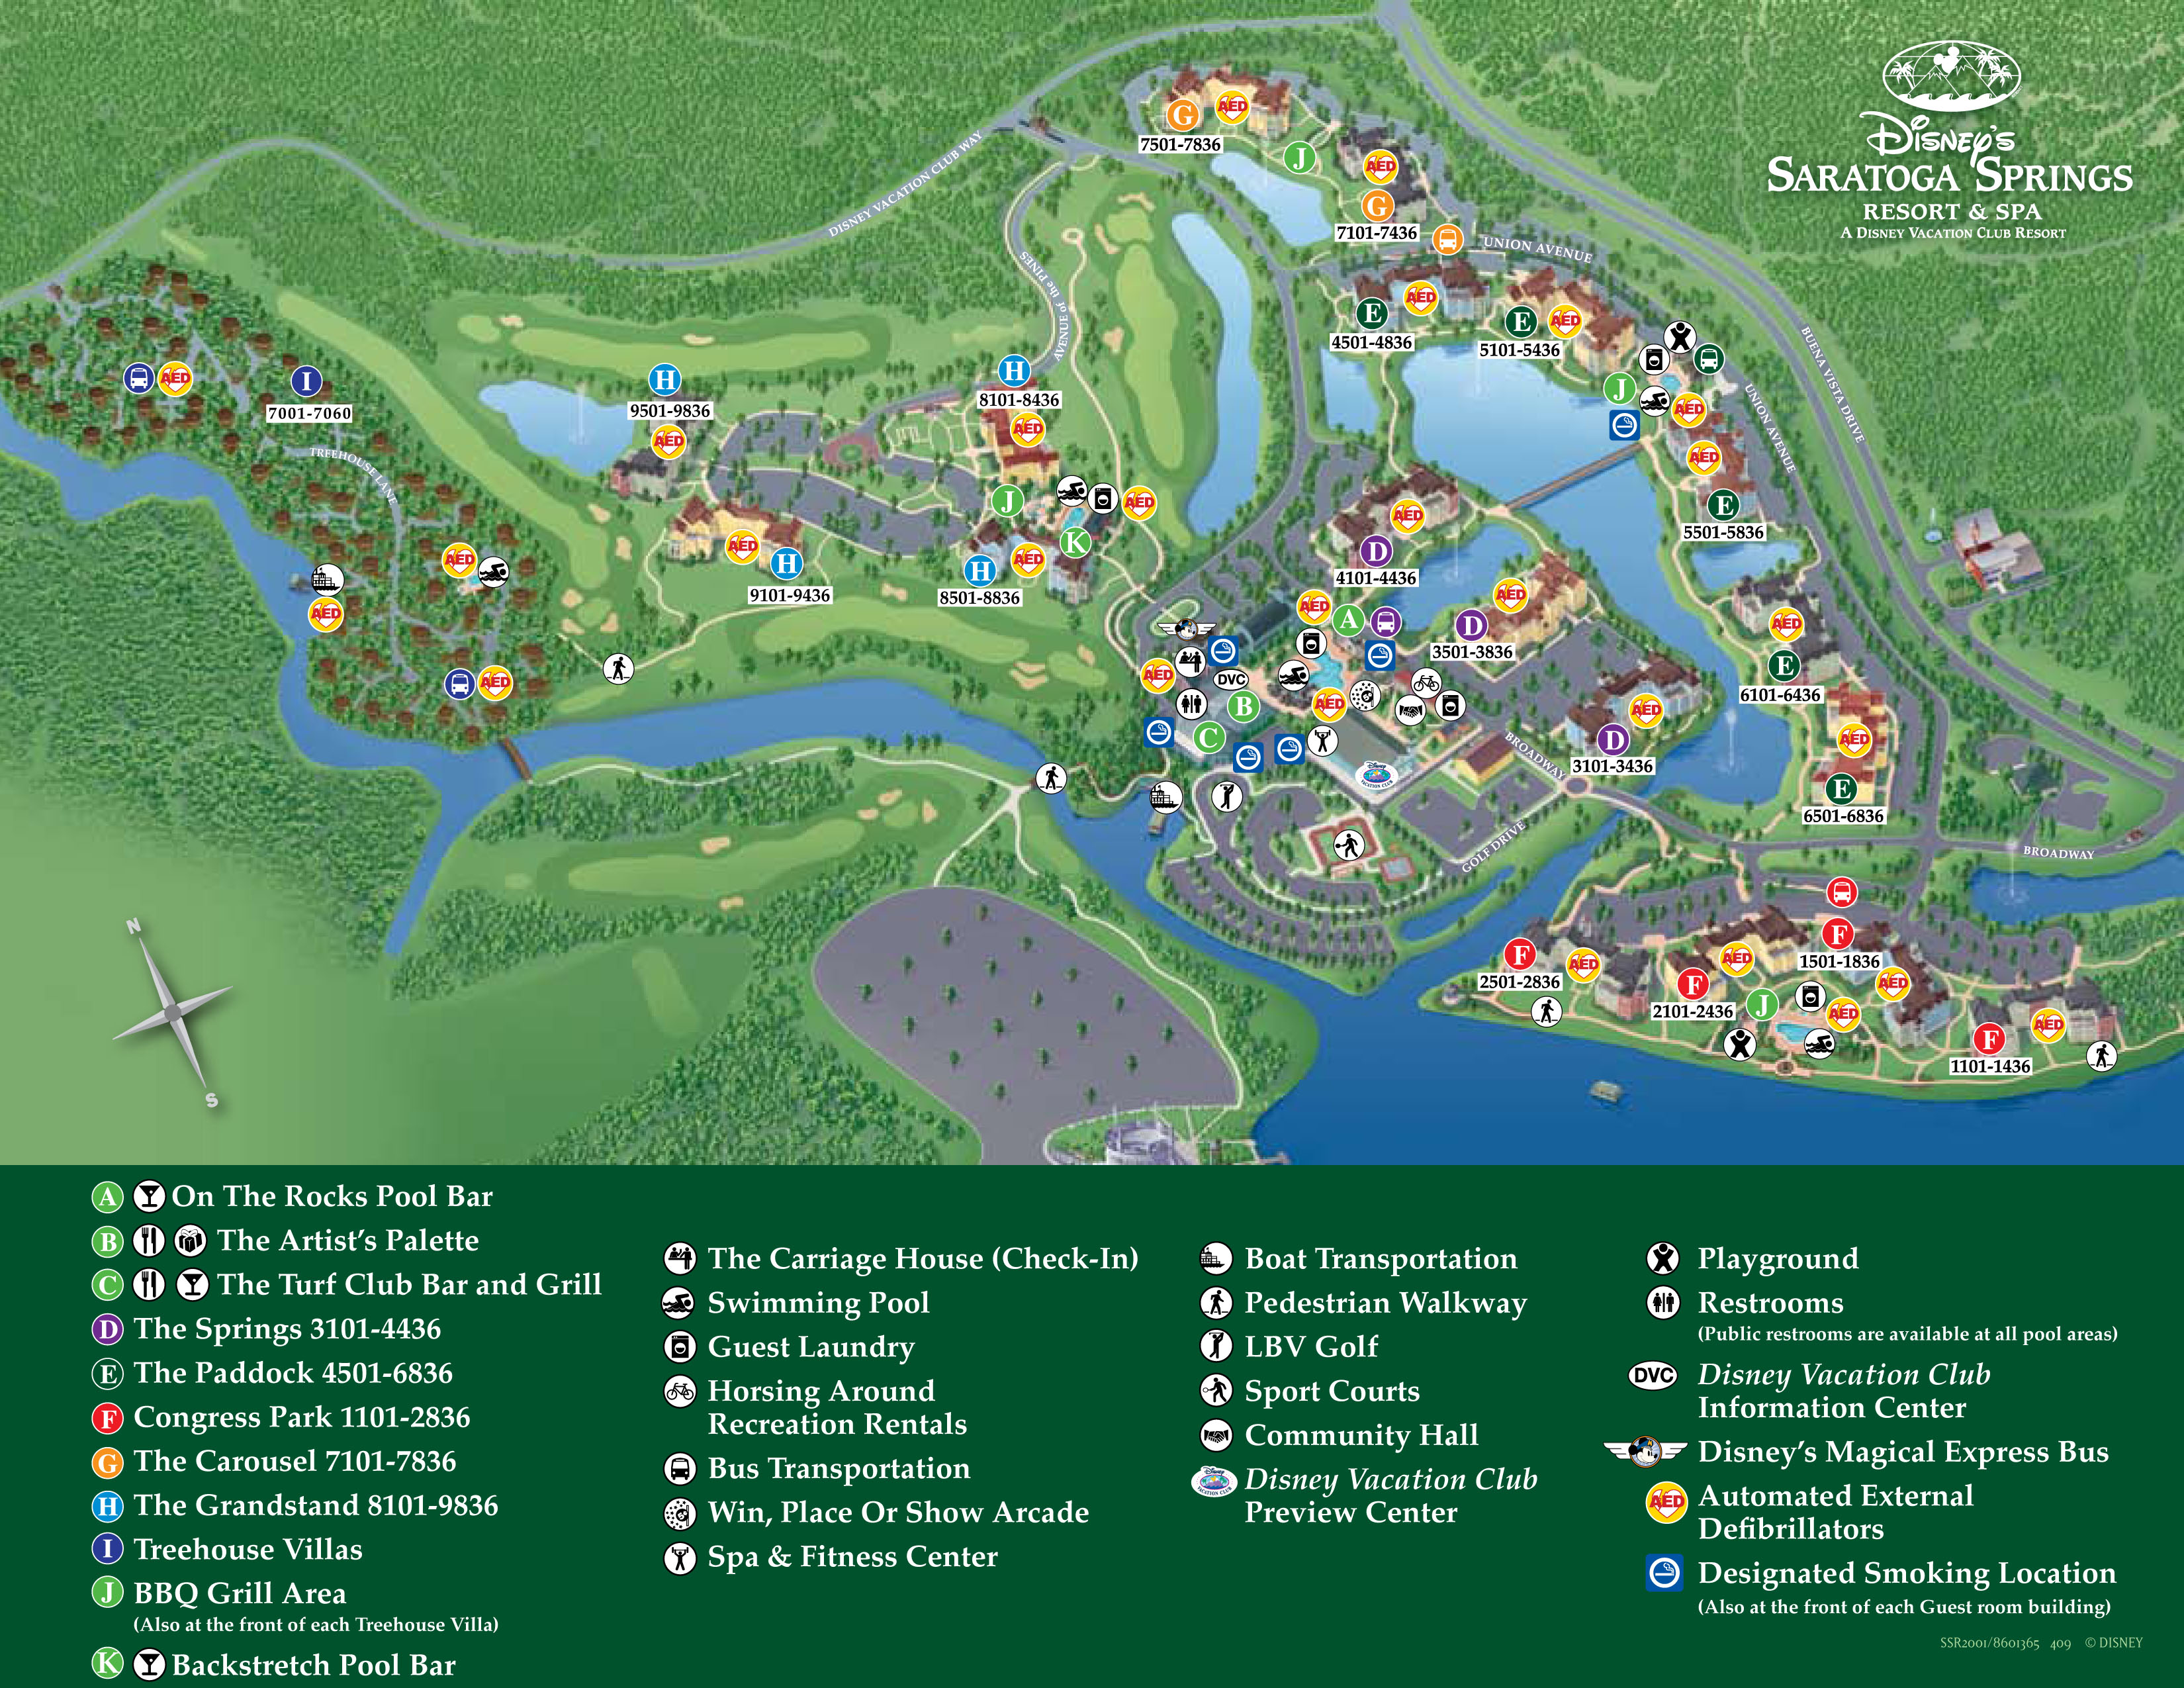 Lovely Disneyu0027s Saratoga Springs Resort And Spa Map